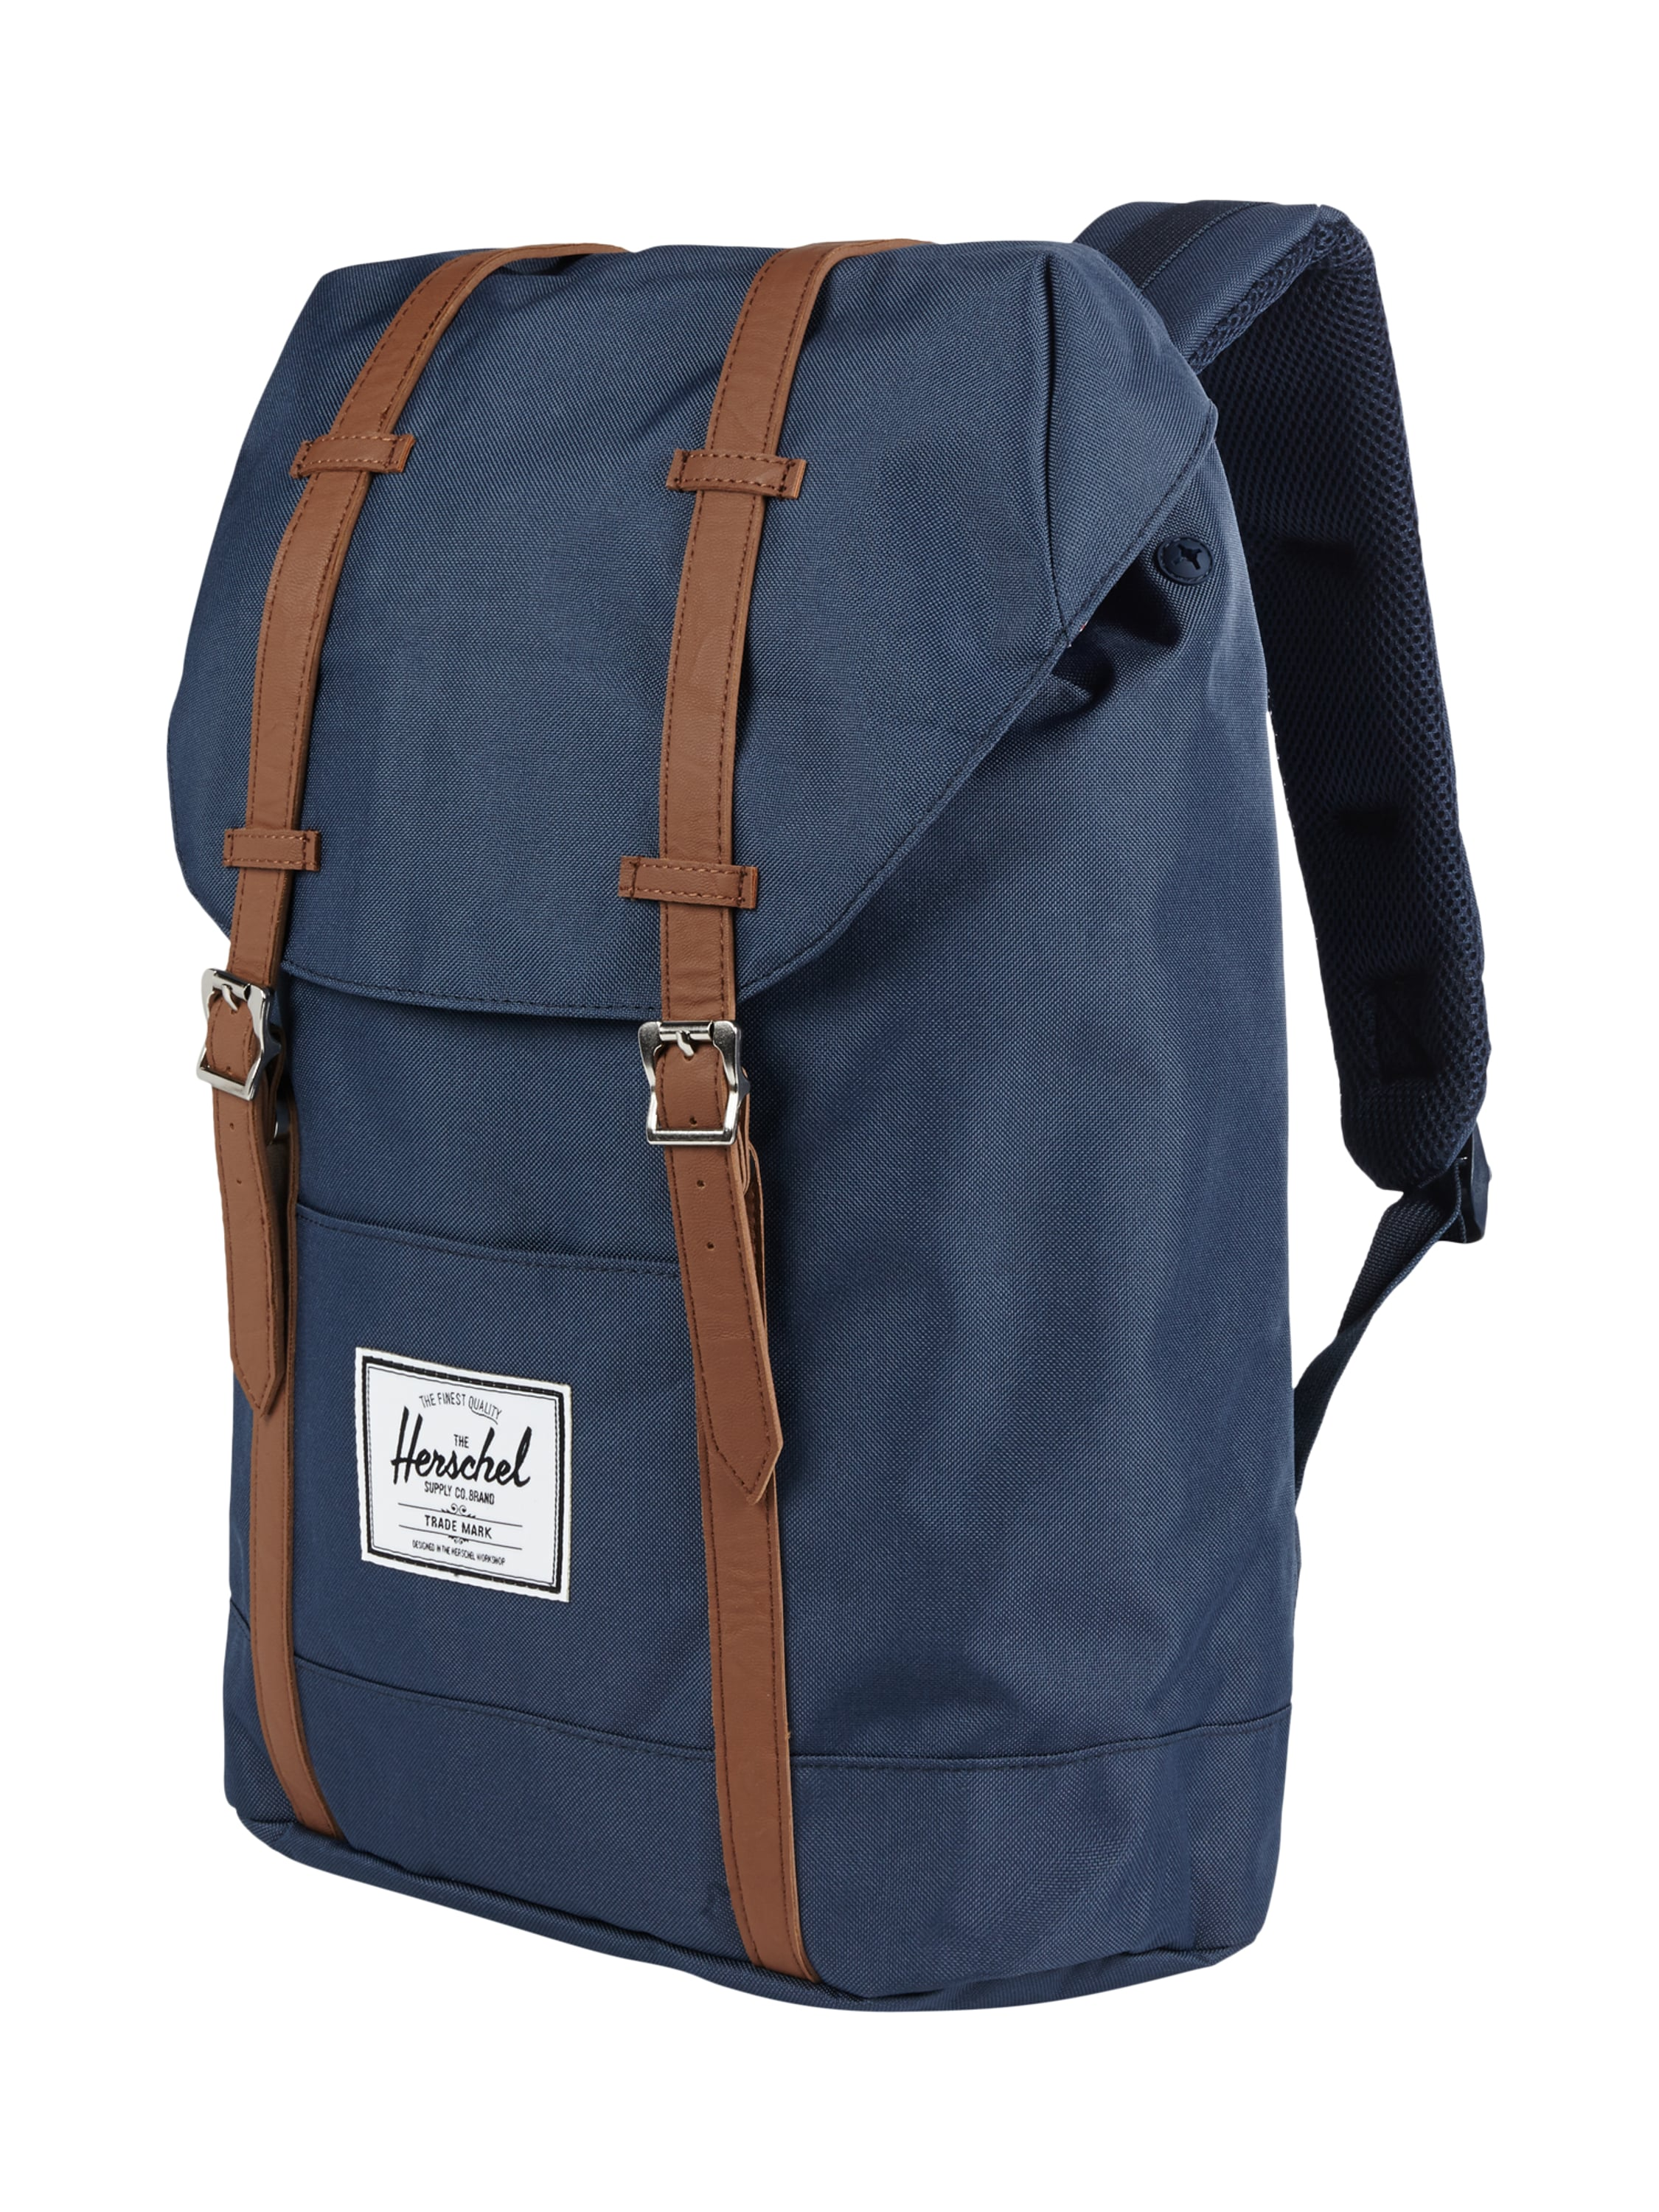 herschel rucksack mit gepolstertem r cken in blau t rkis online kaufen 9505212 p c online shop. Black Bedroom Furniture Sets. Home Design Ideas